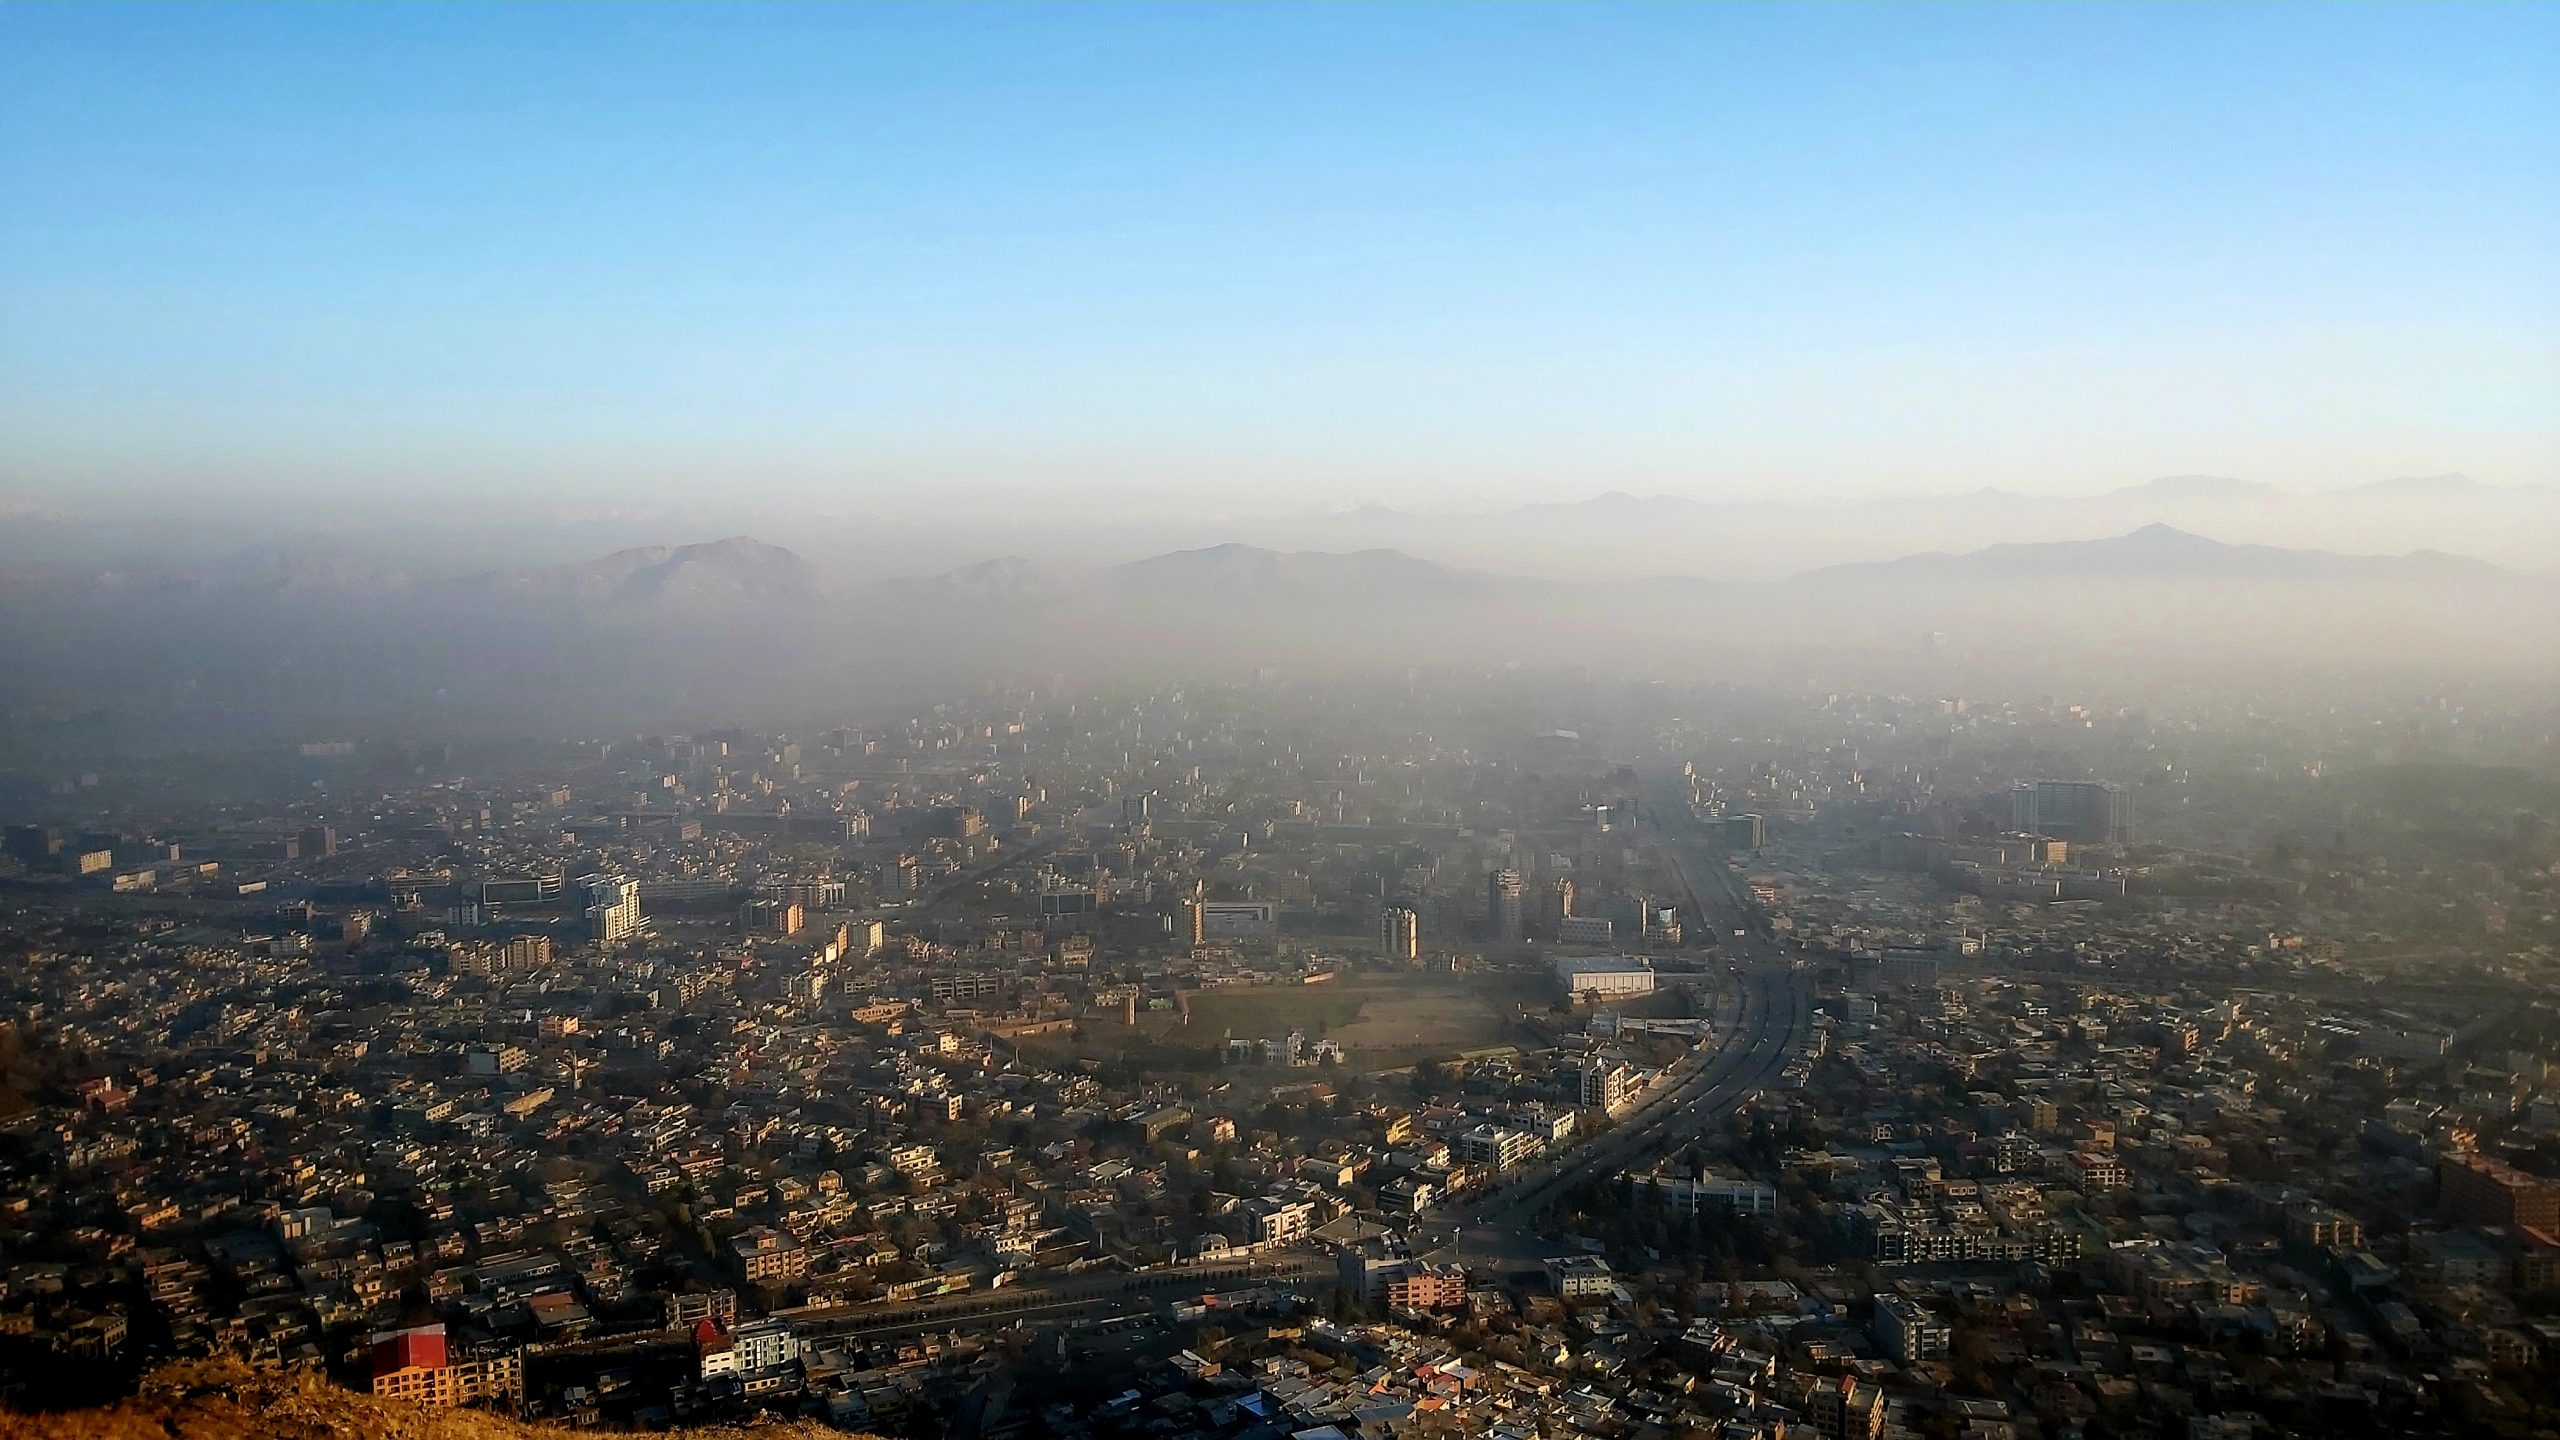 Landscape of Kabul City from Top December 06 2019 - Credit - Ezom